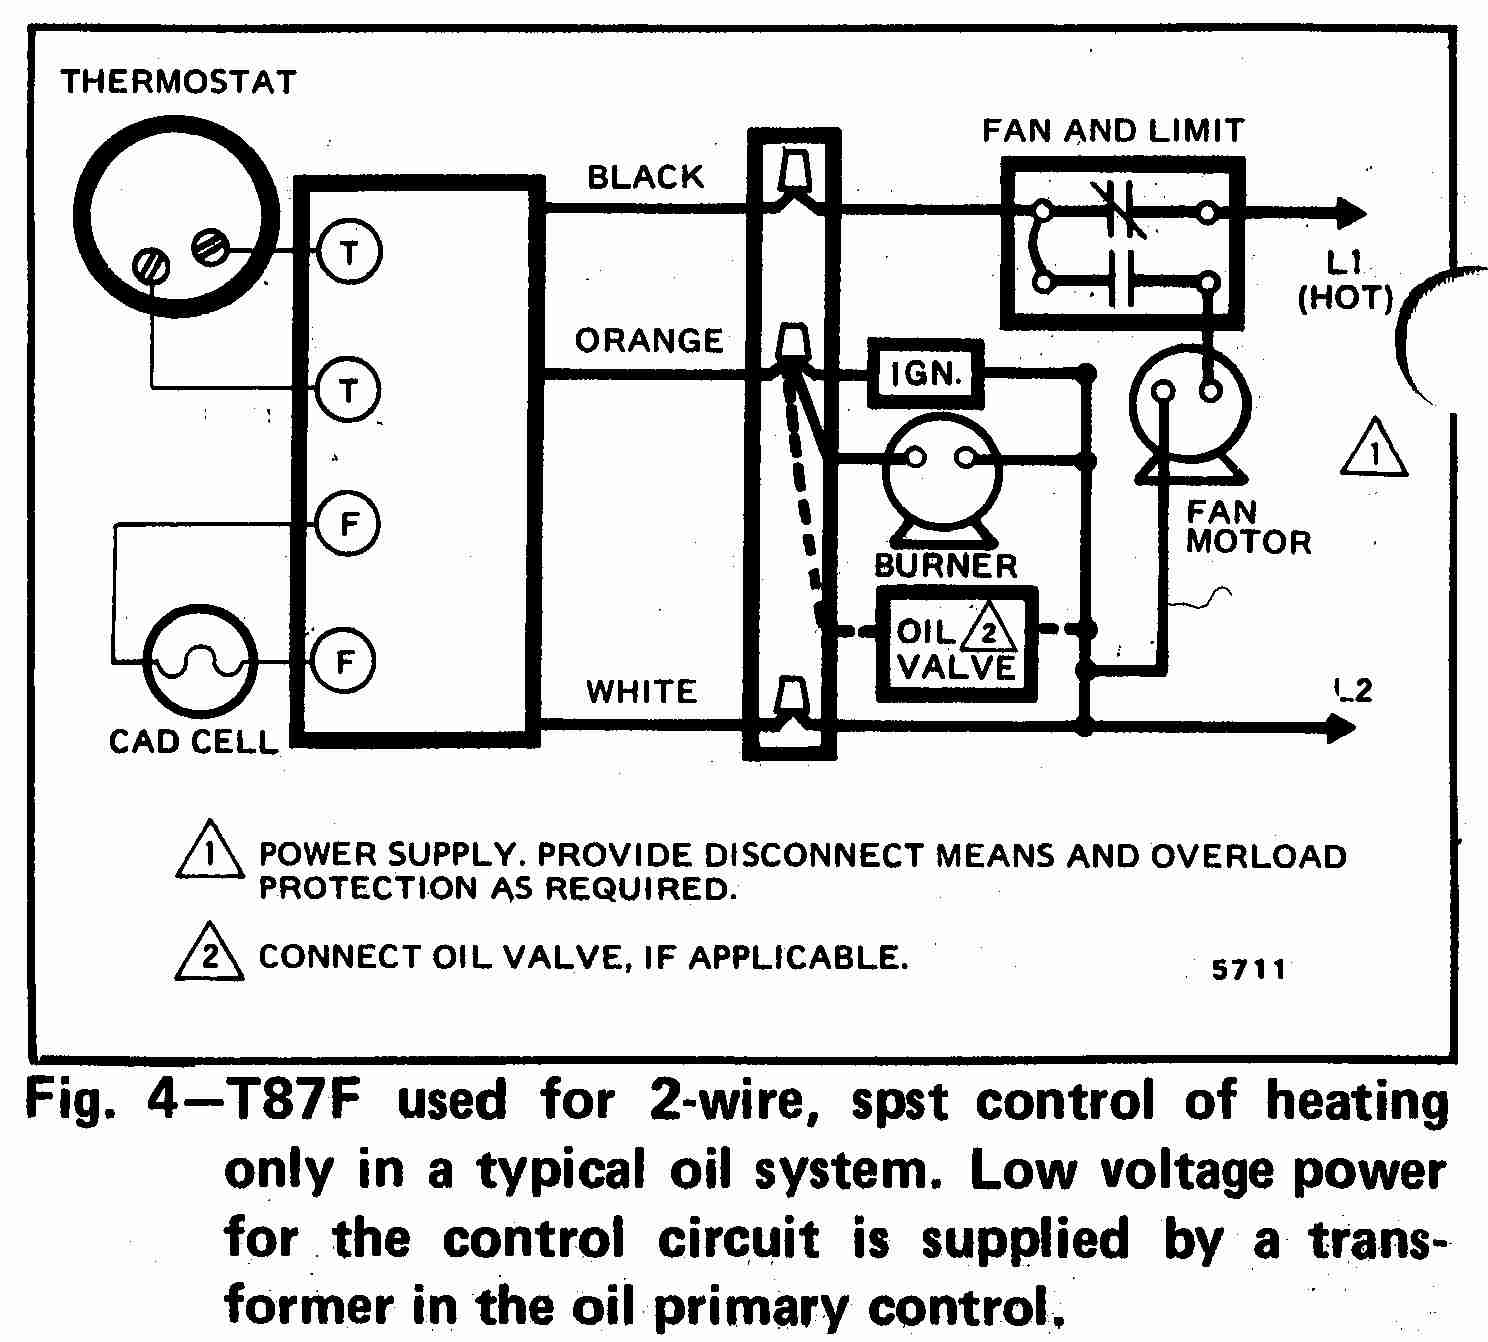 Room Thermostat Wiring Diagrams For Hvac Systems Drawing Guide Honeywell T87f Diagram 2 Wire Spst Control Of Heating Only In